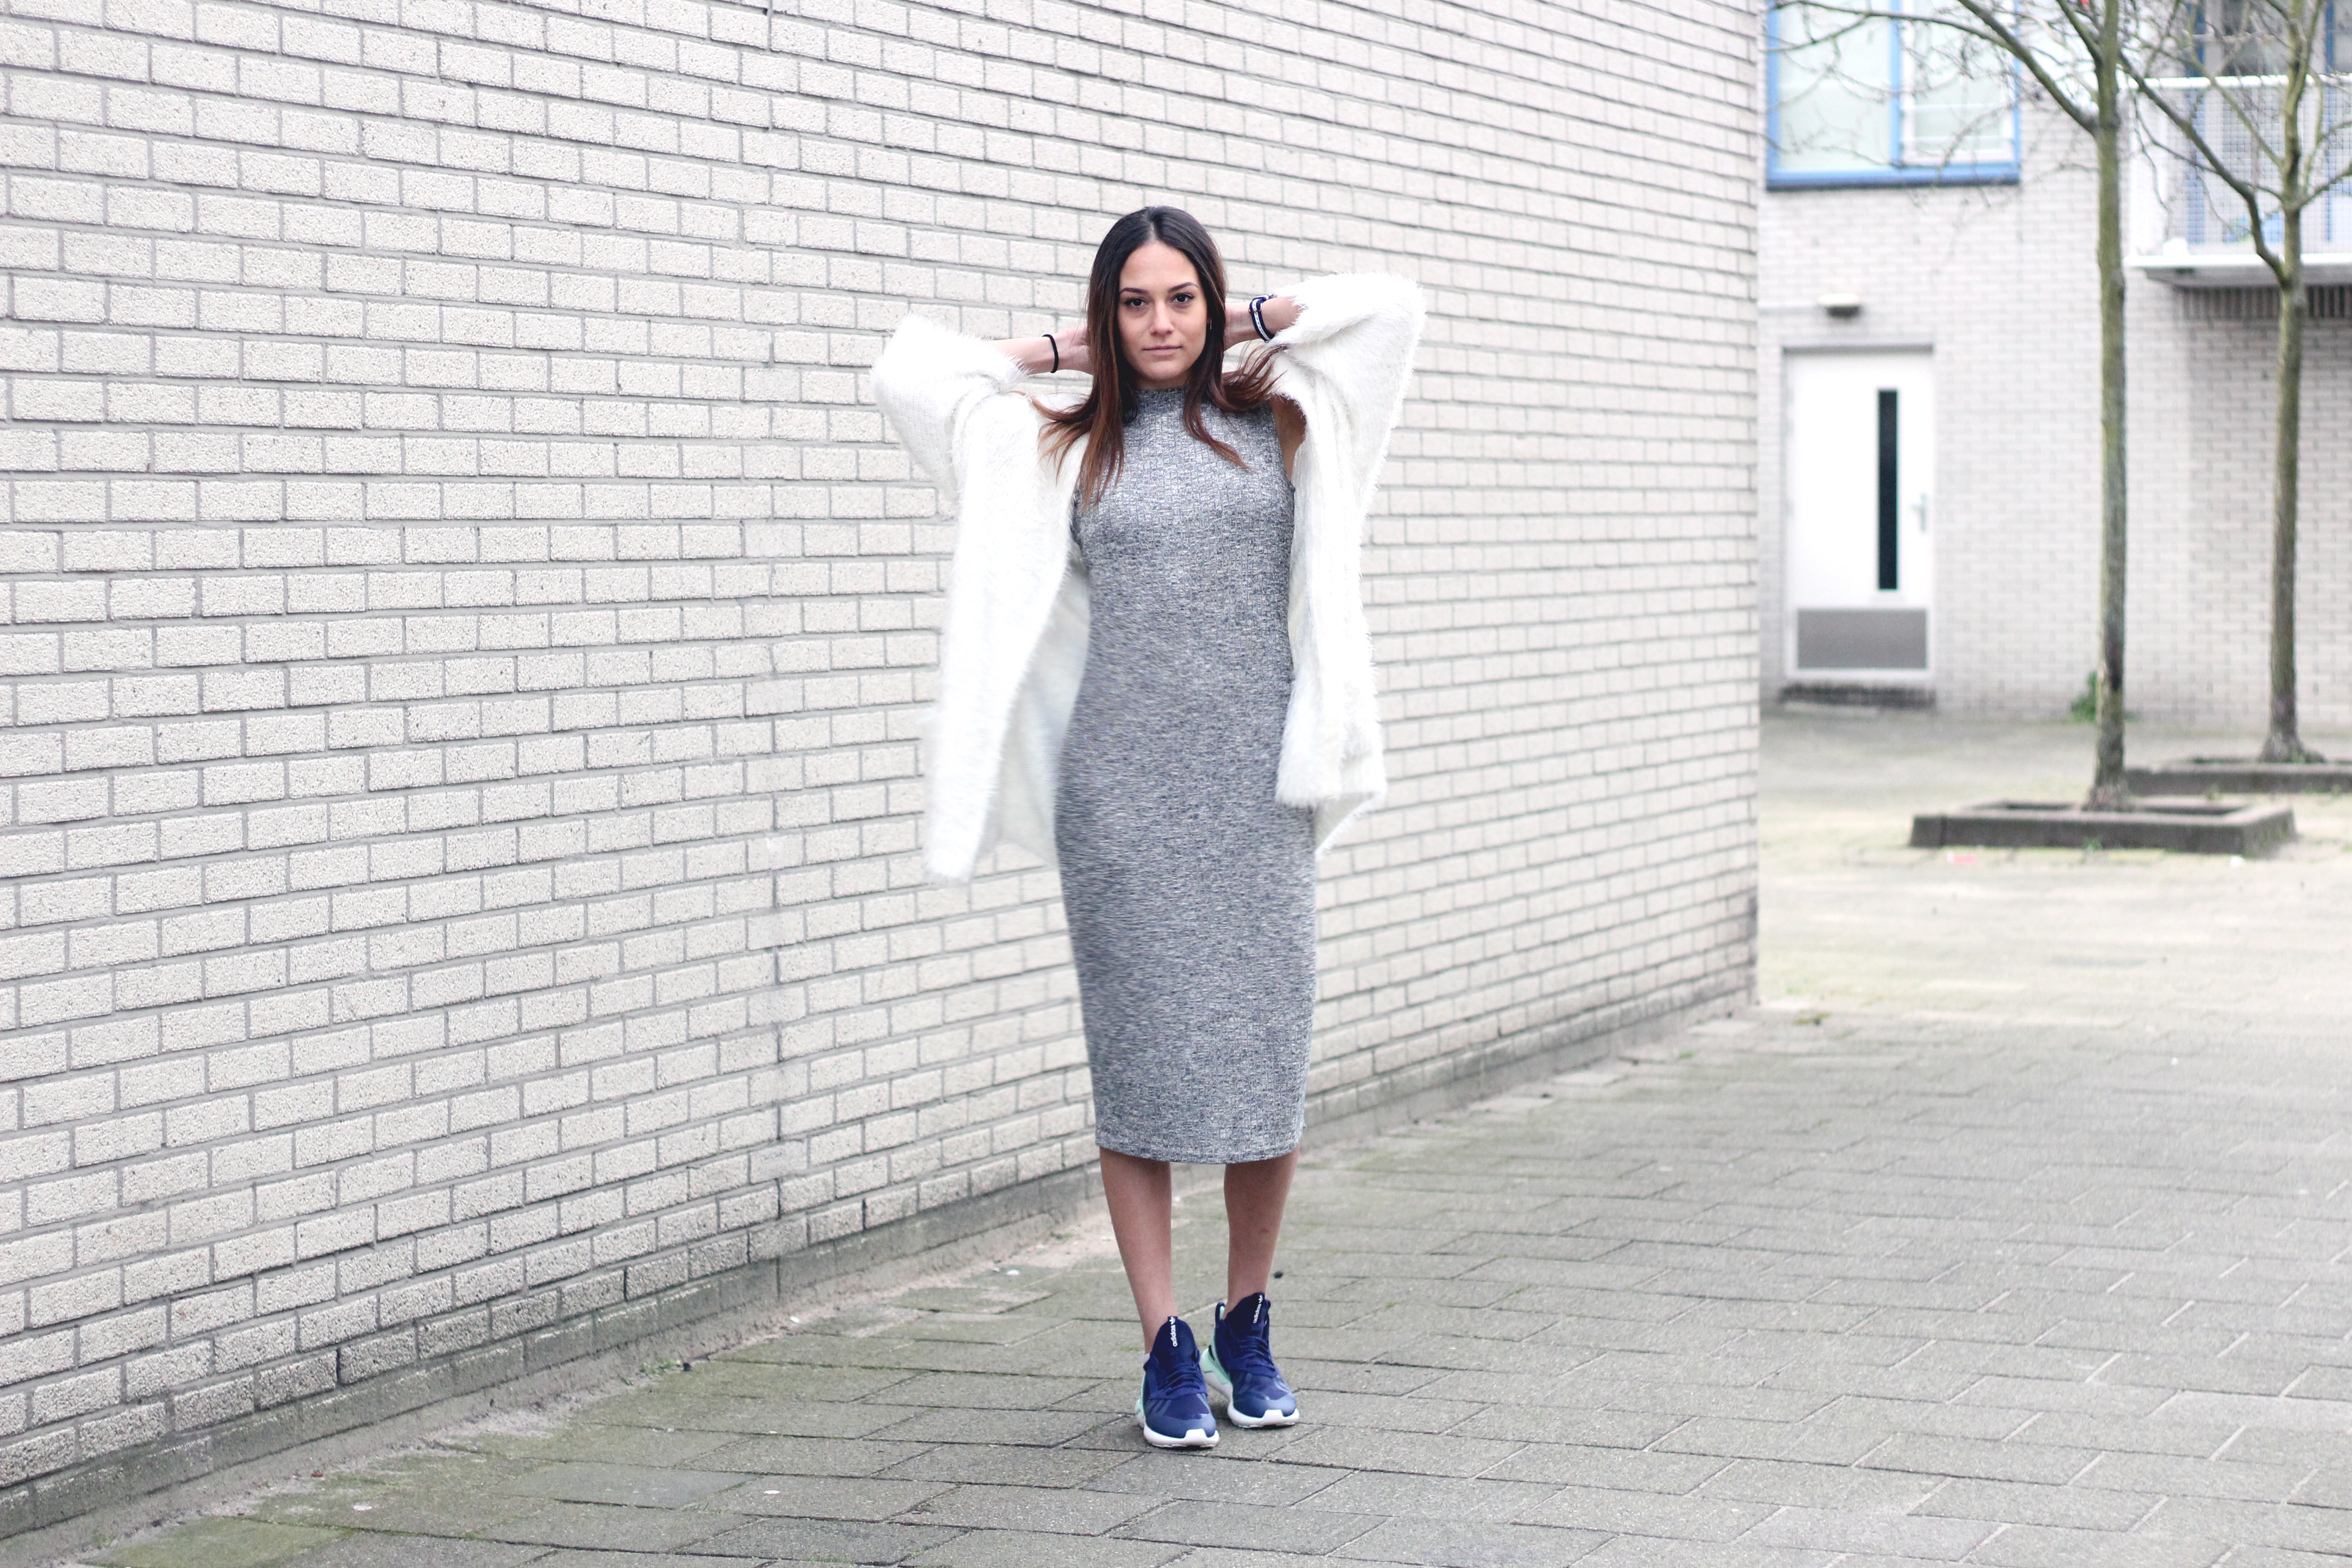 outfit bulgarian fashion blogger quite a looker adidas tubular runner sneakers oversized cardigan midi dress minimalist scandinavian style www.quitealooker.com